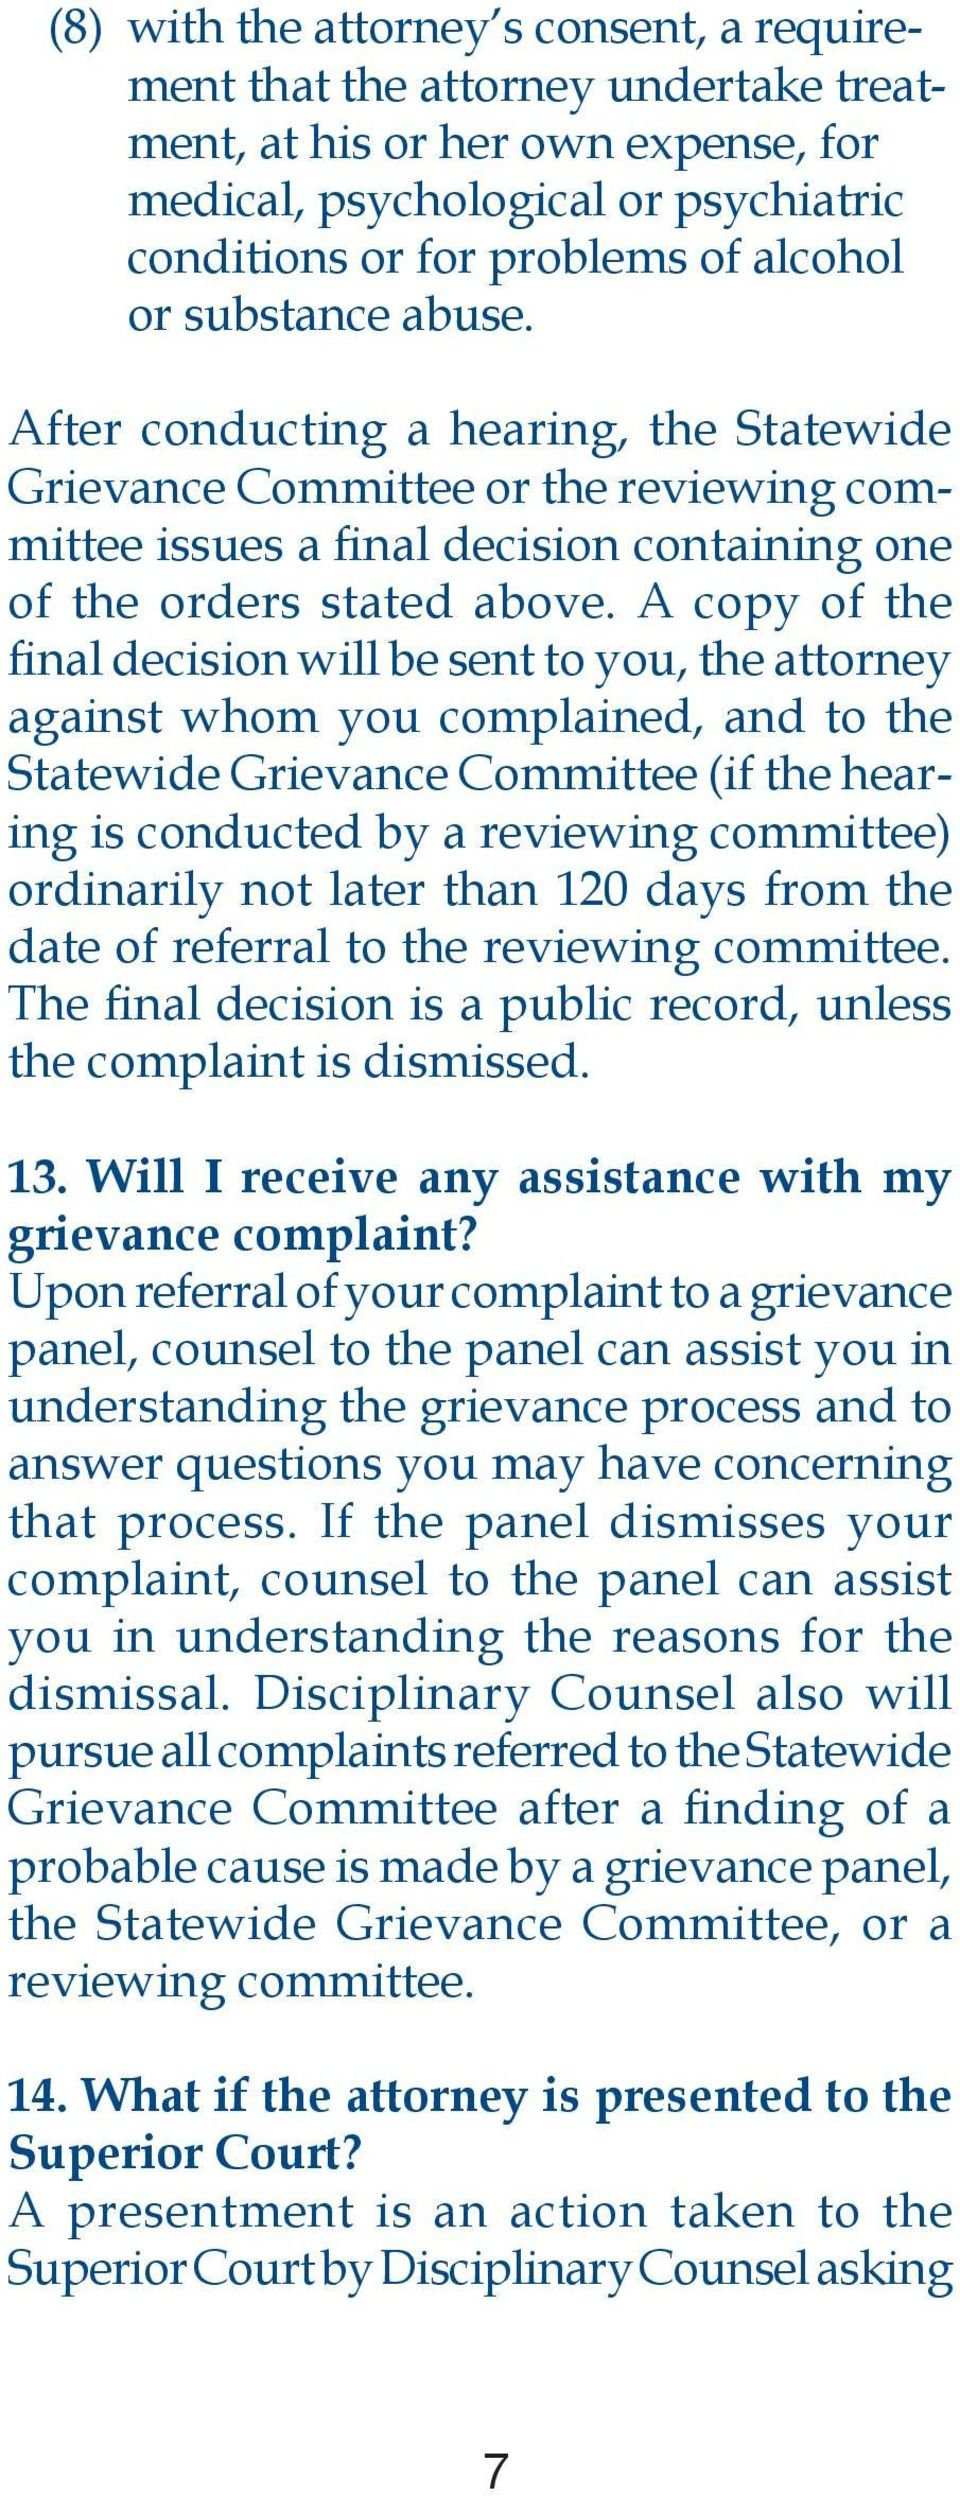 A copy of the final decision will be sent to you, the attorney against whom you complained, and to the Statewide Grievance Committee (if the hearing is conducted by a reviewing committee) ordinarily